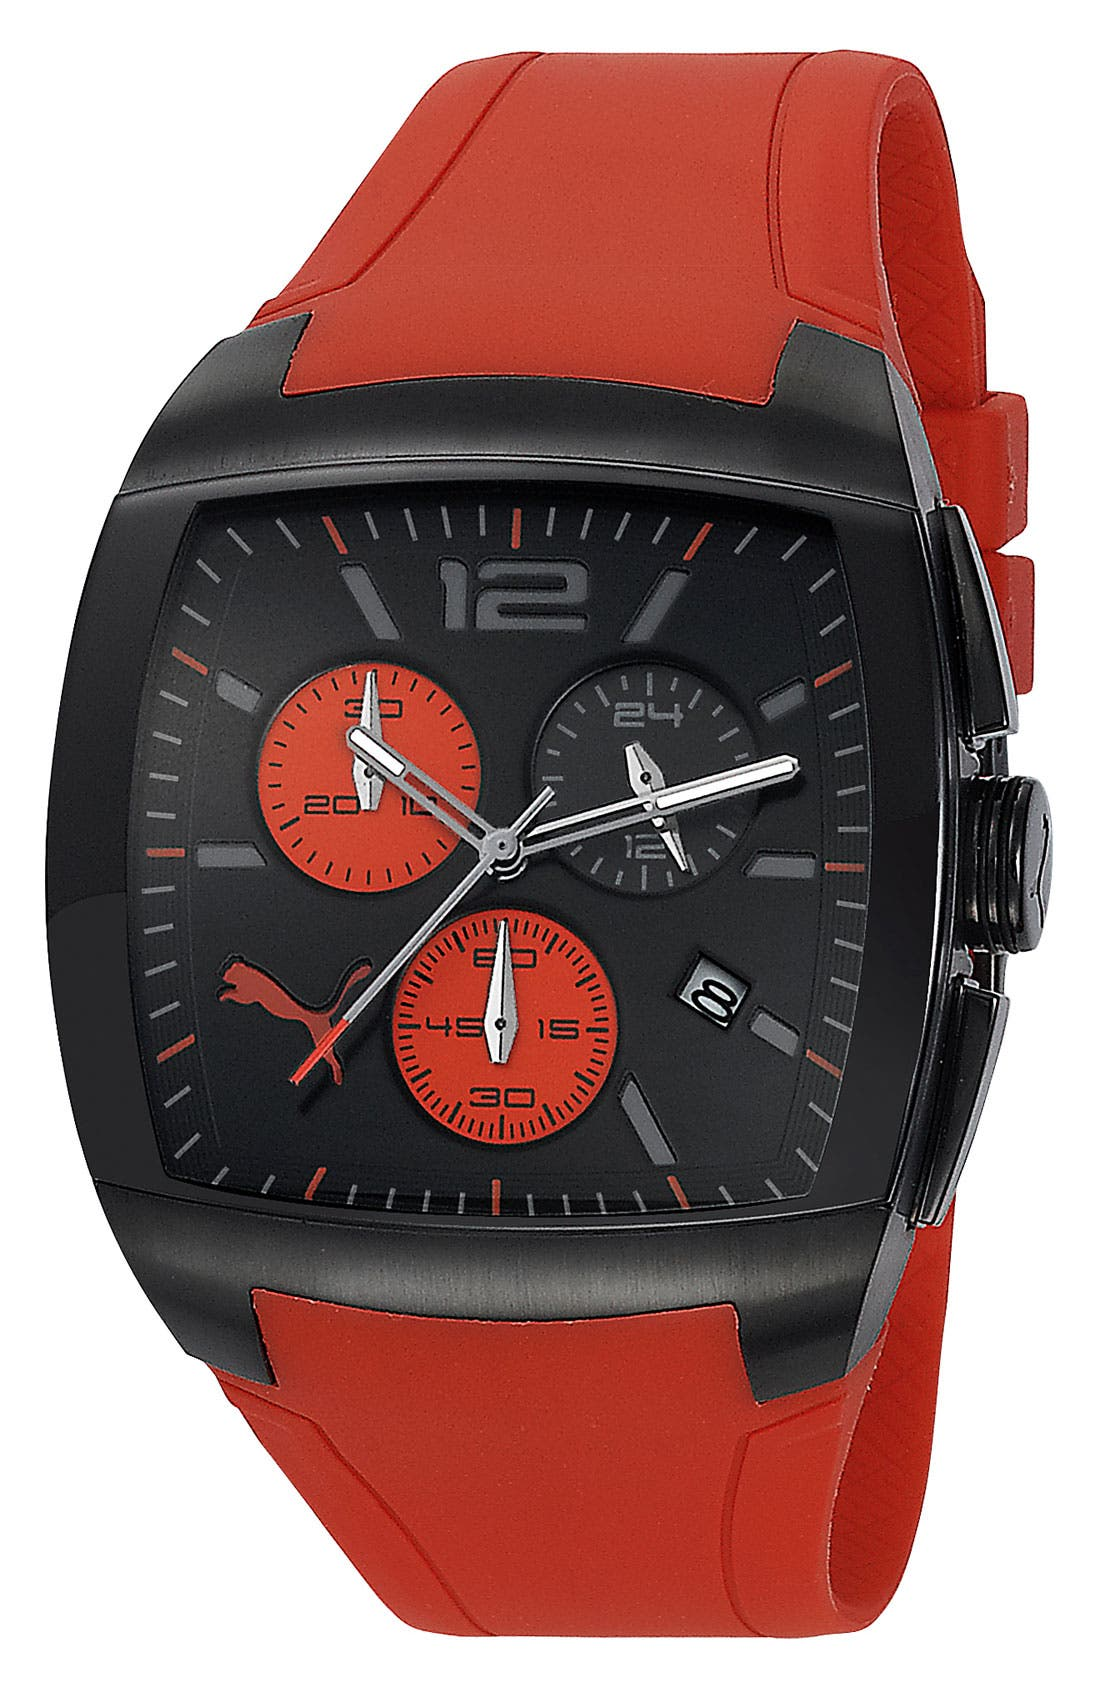 Main Image - PUMA 'GT Chronograph' Analog Watch, 44mm